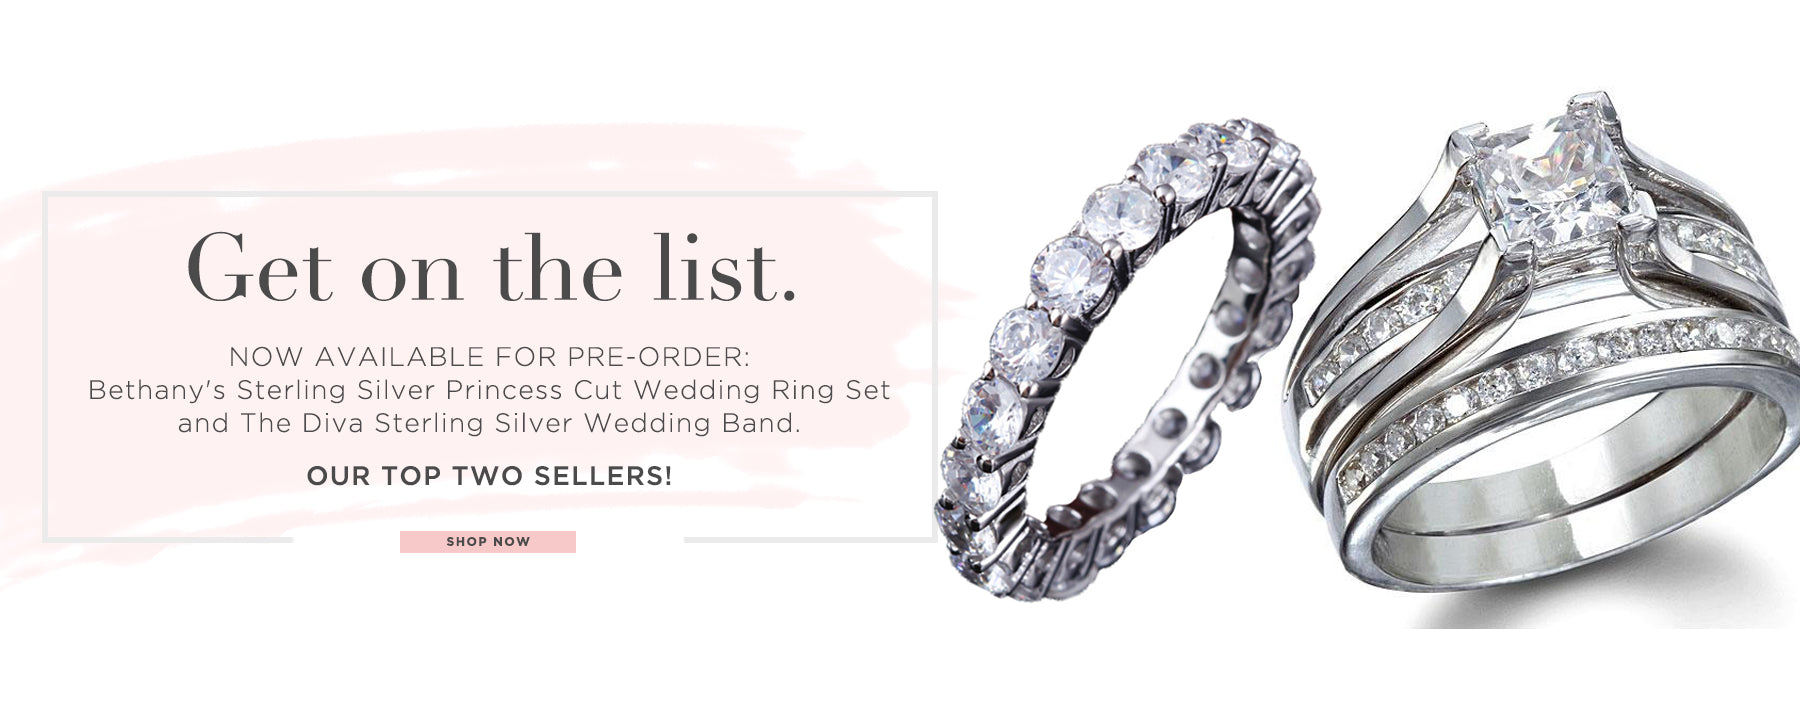 get on the list. Now available for pre-order: Bethany's Sterling Silver Princess Cut Wedding Ring Set and The Diva Sterling Silver Wedding Band. Our Top Two Best Sellers! Shop Now.